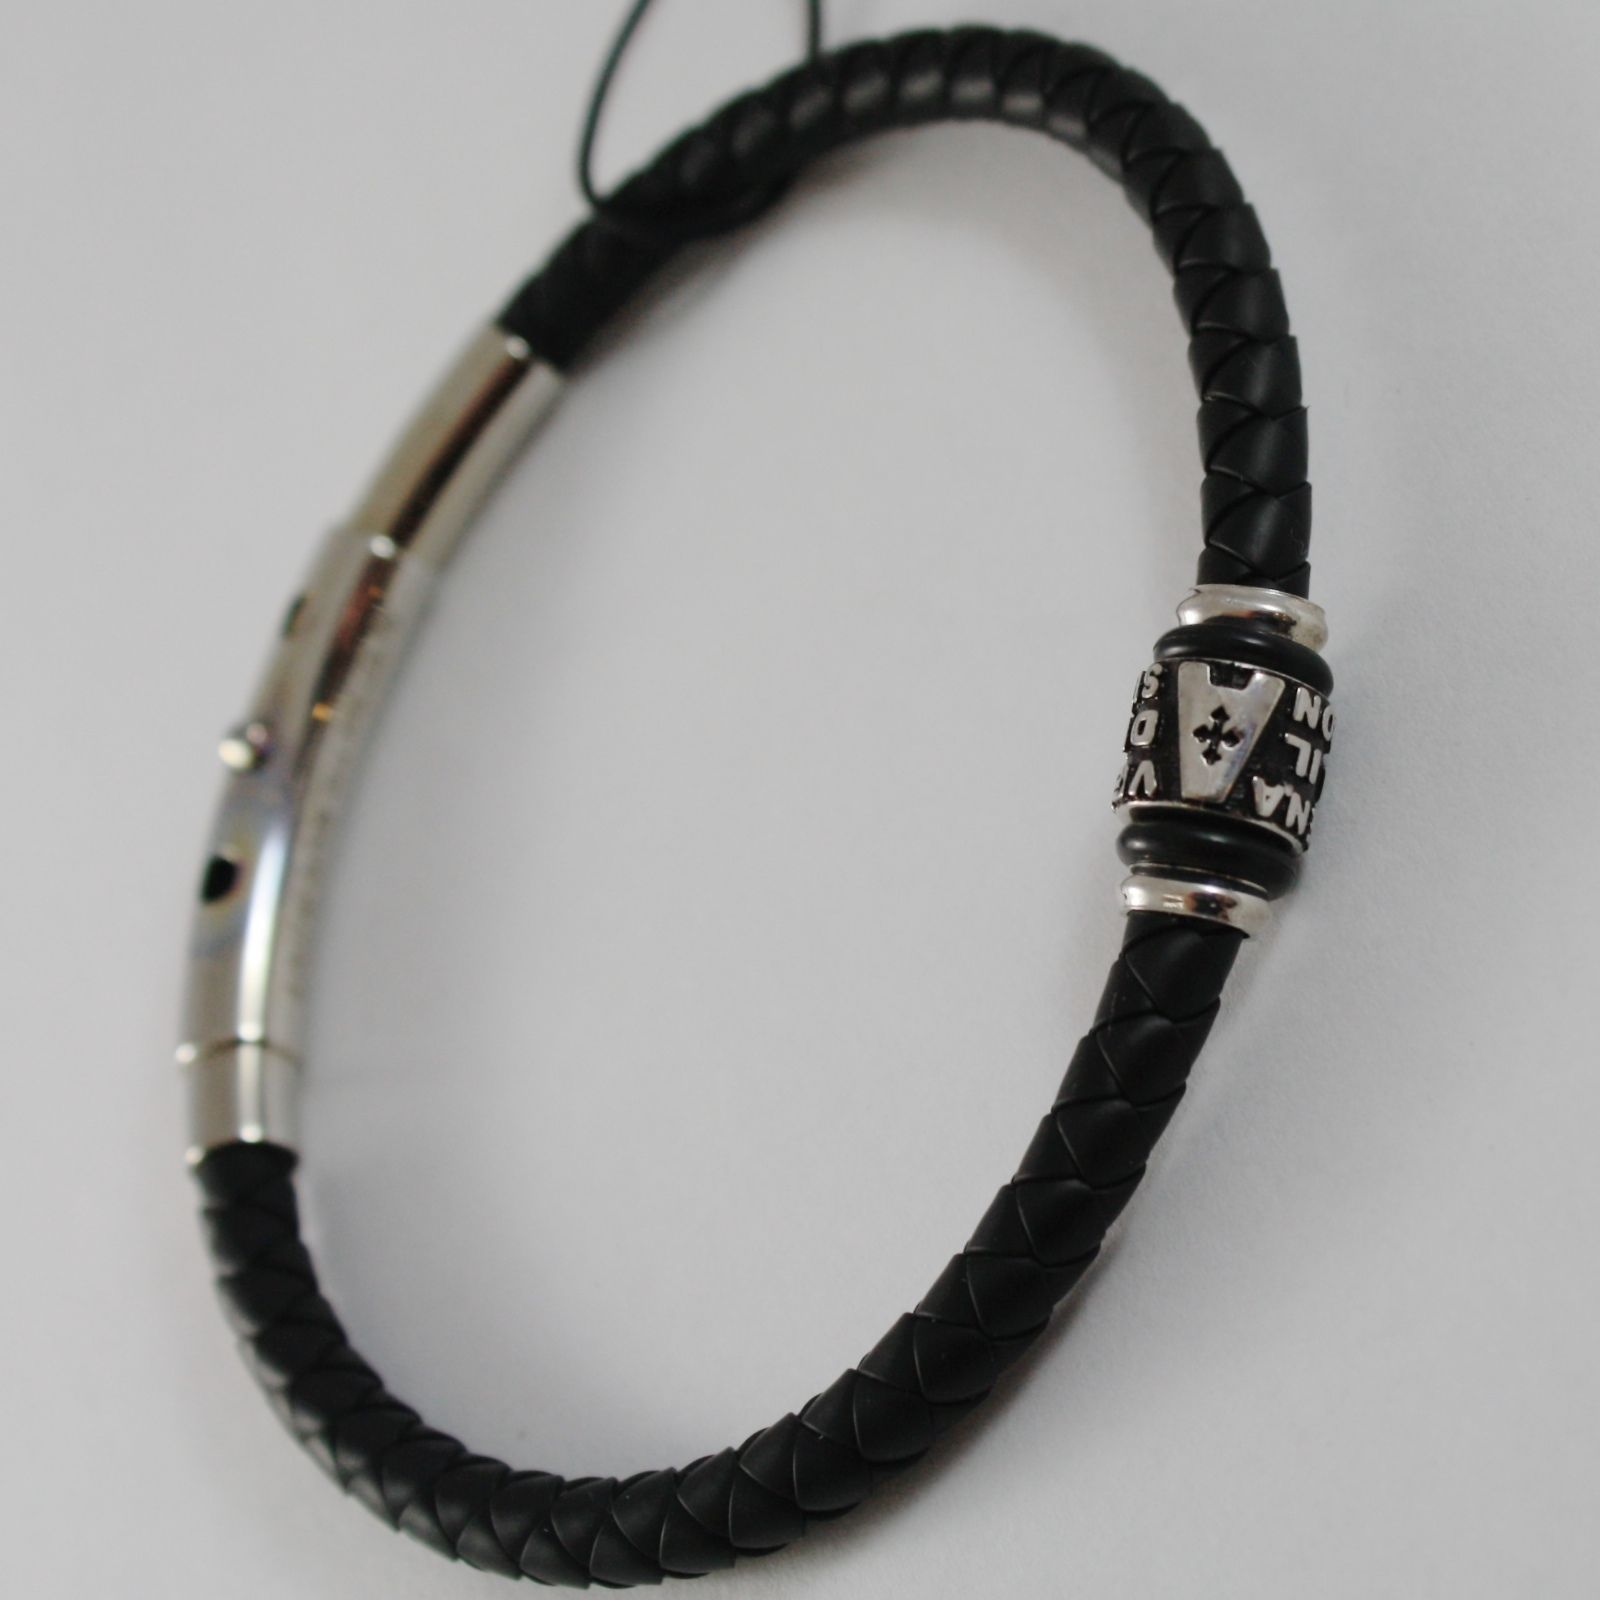 925 SILVER ZANCAN BRACELET BLACK WOVEN LEATHER, AVE MARIA PRAYER MADE IN ITALY